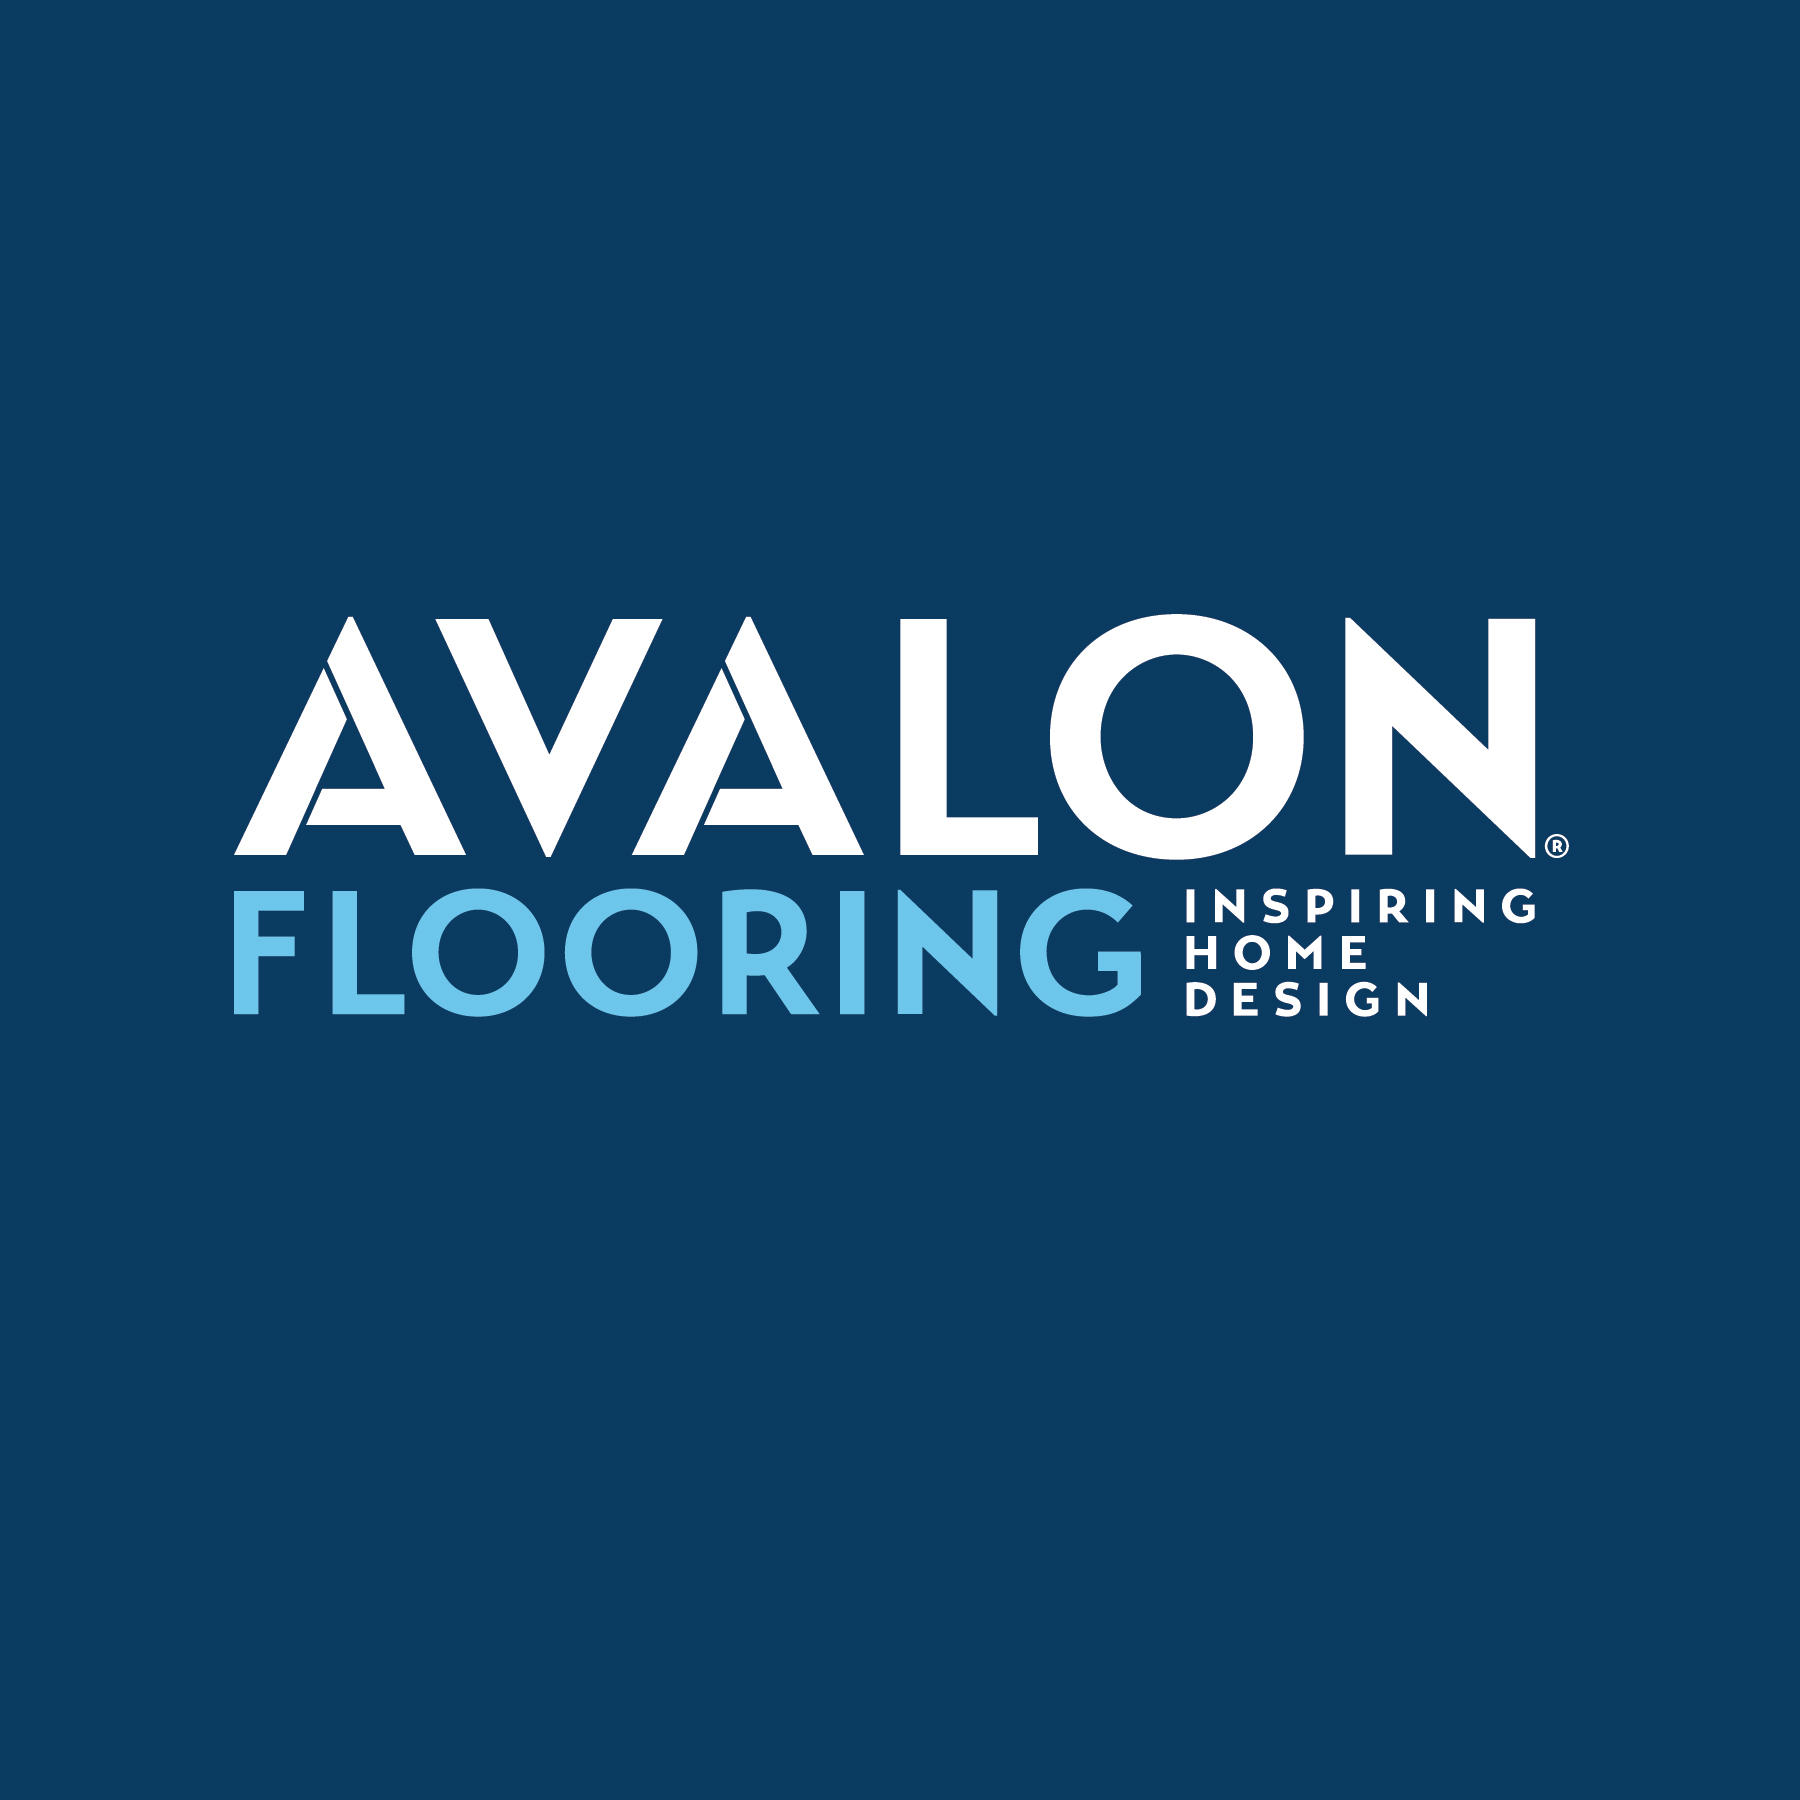 Avalon Flooring